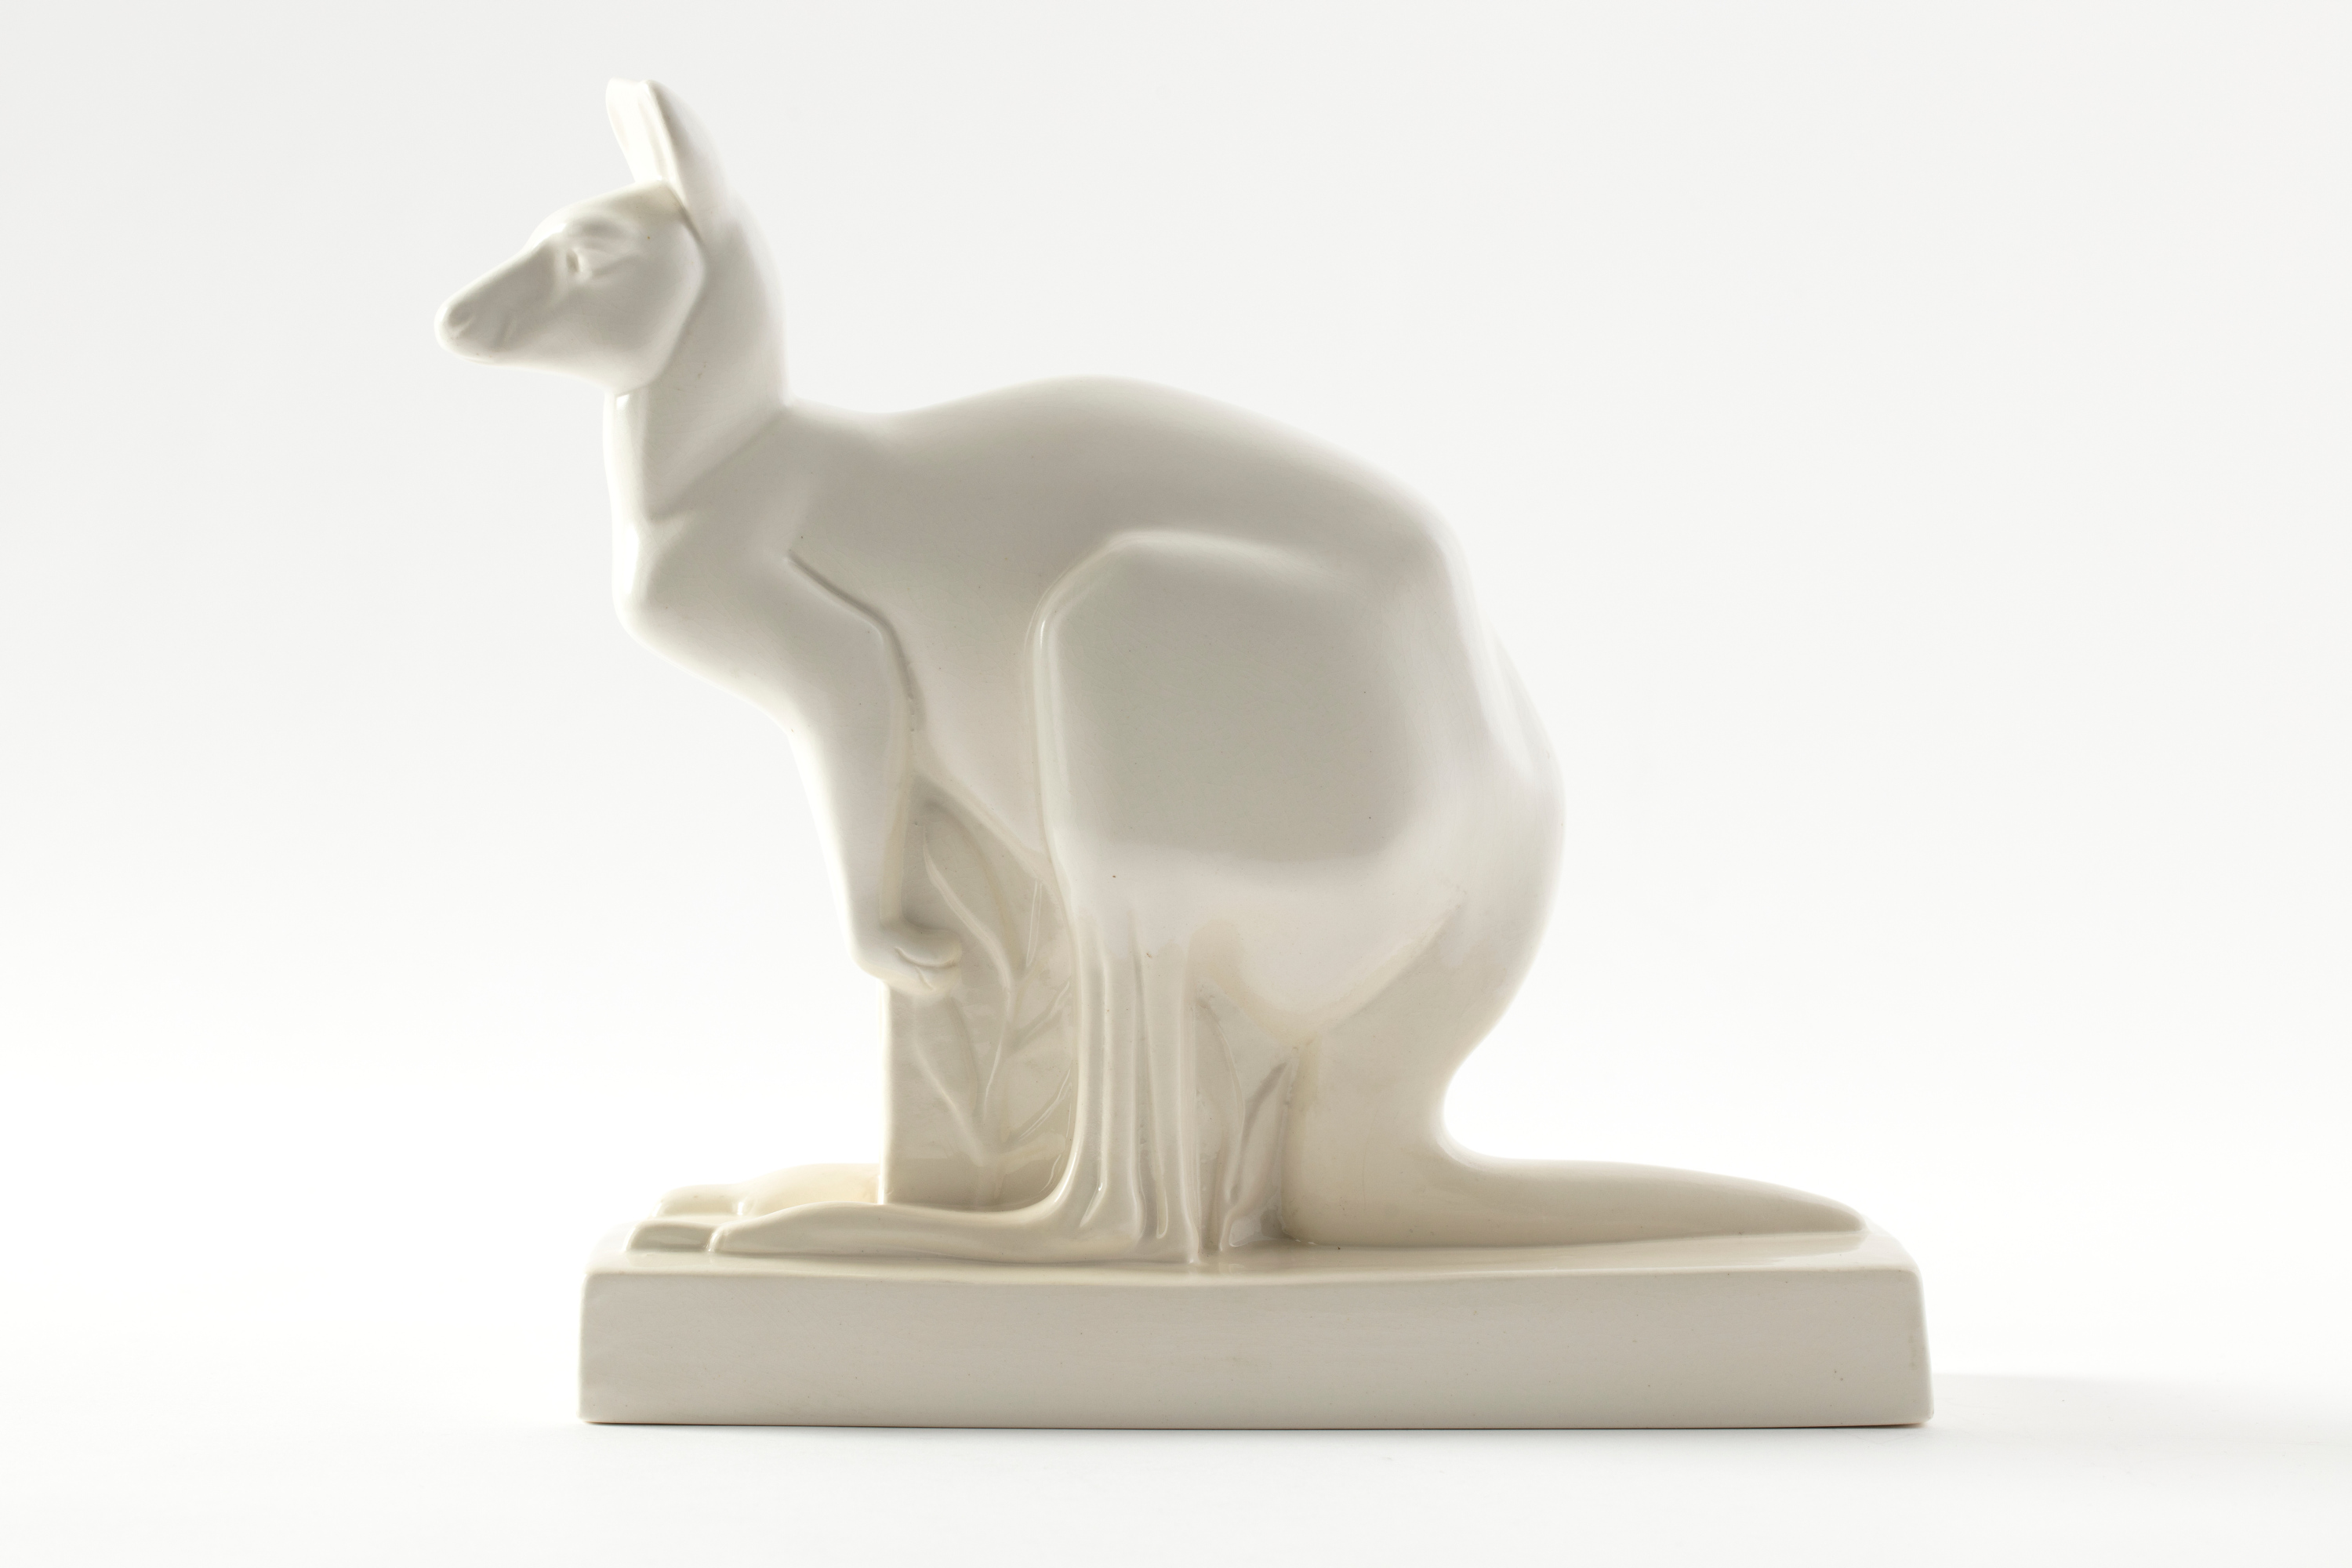 White earthenware kangaroo on a white studio background. The kangaroo has a minimalist form, sits on a rectangular base, and is lit by soft lighting.